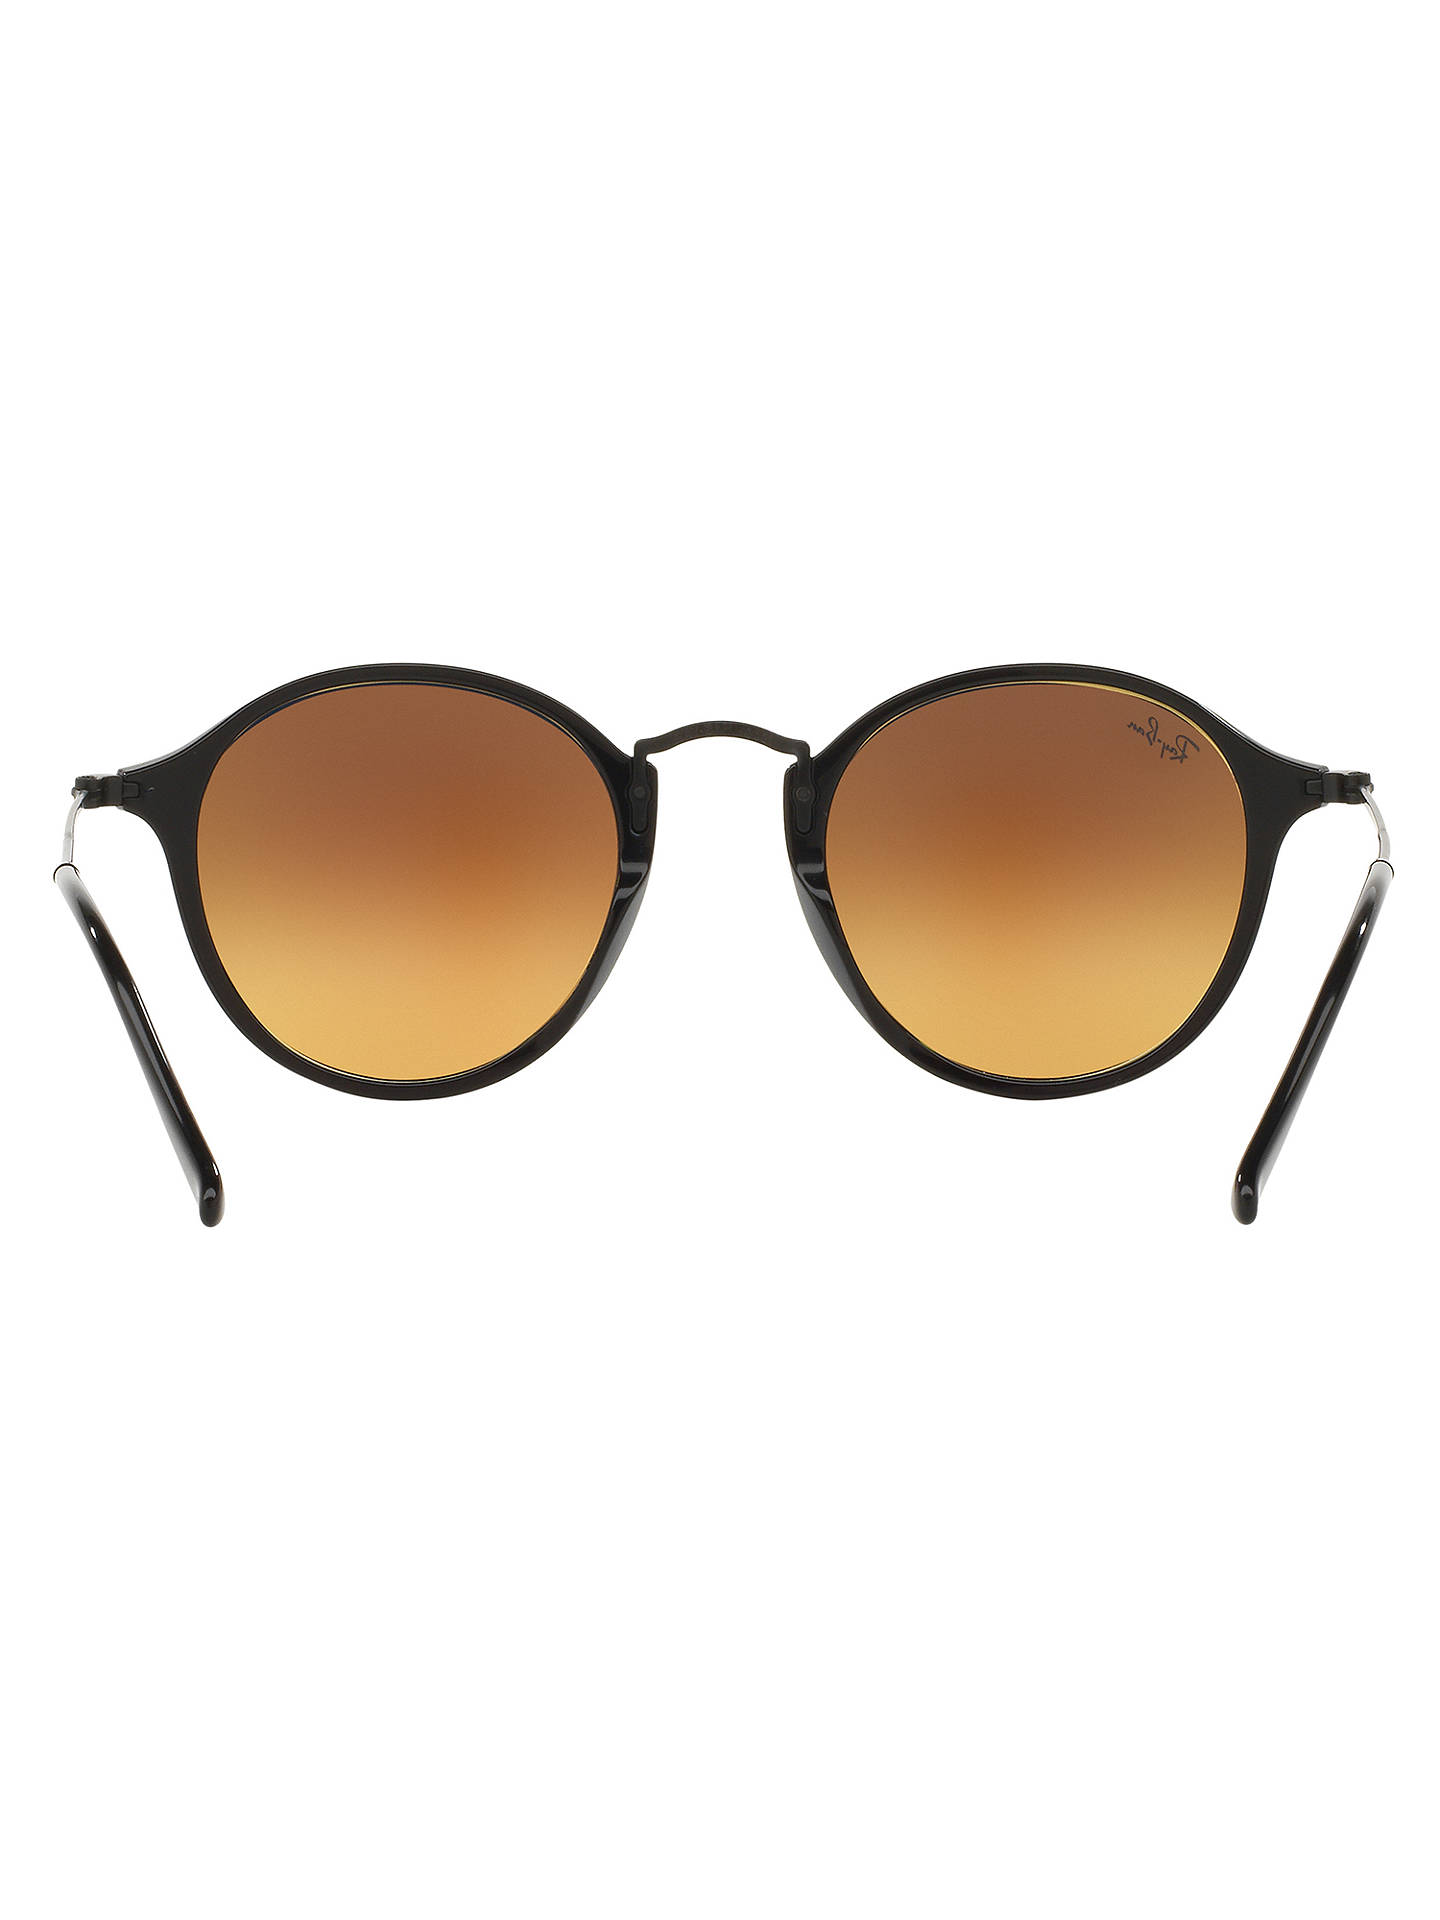 BuyRay-Ban RB2447 Round Fleck Sunglasses, Black/Blue Online at johnlewis.com